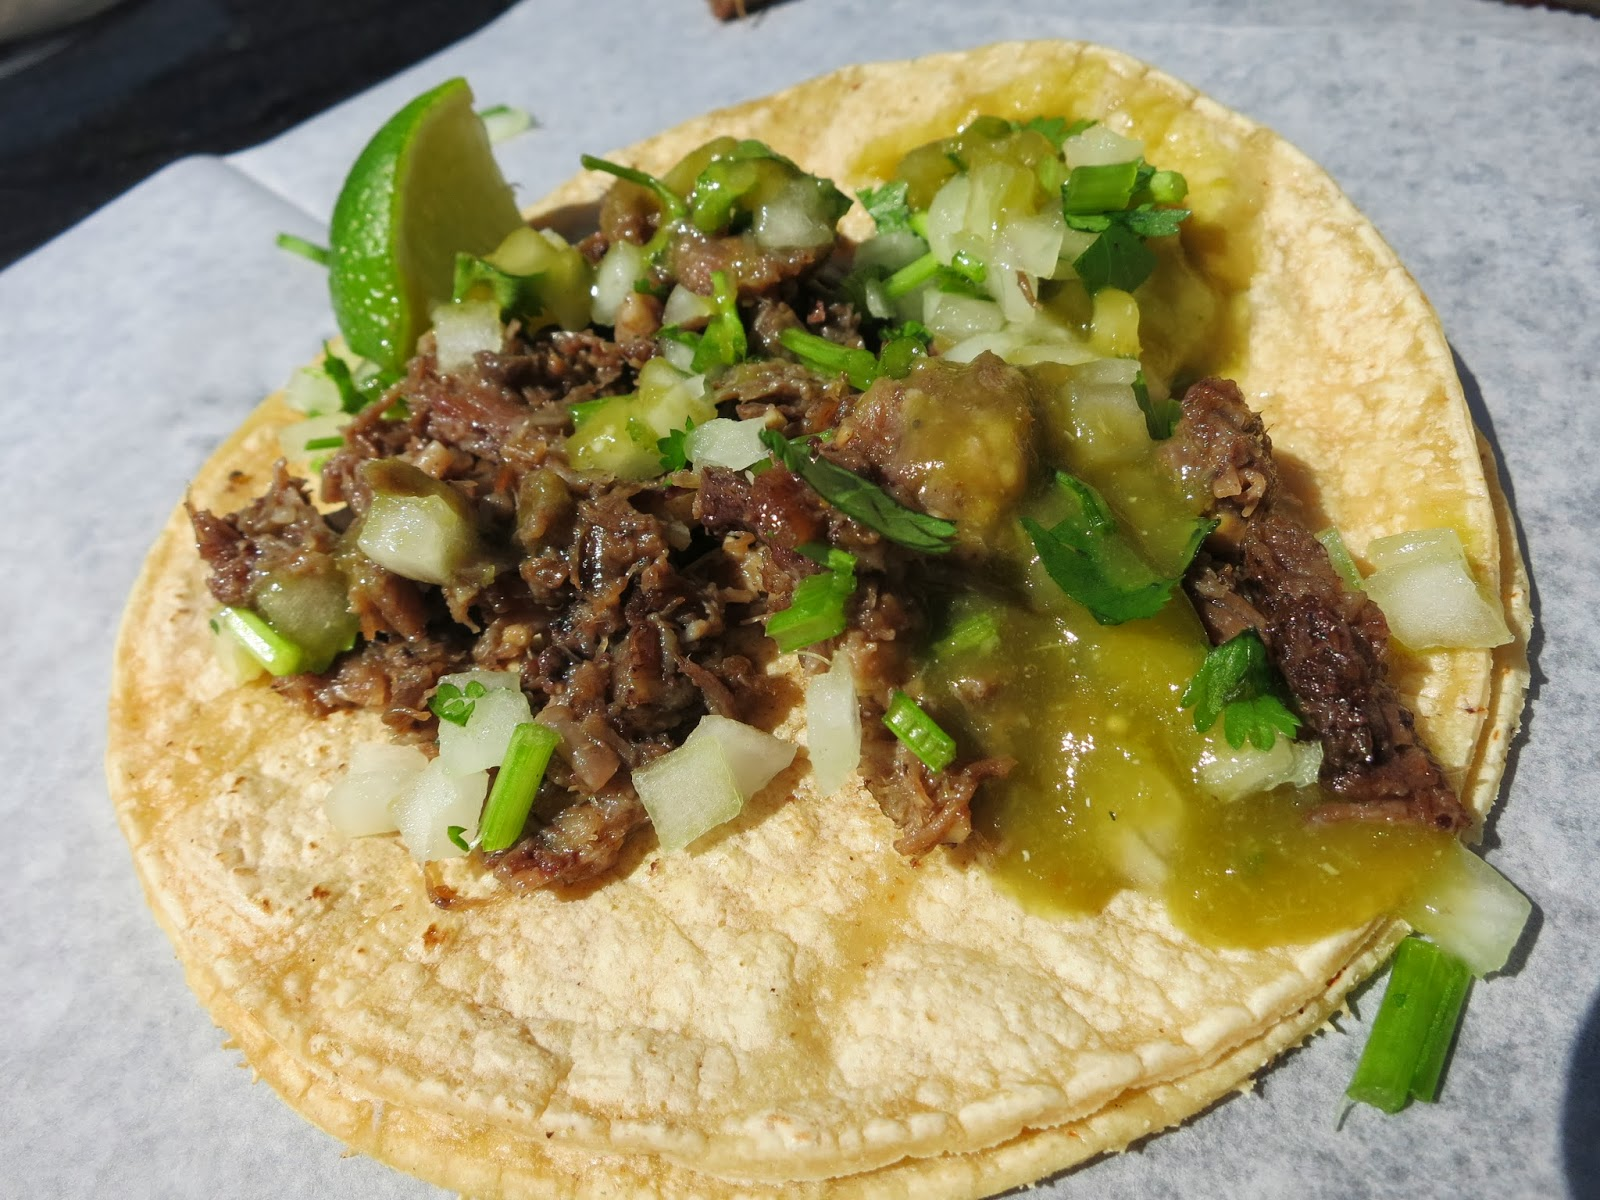 Tacos El Torito | The Chicago Taco Tour